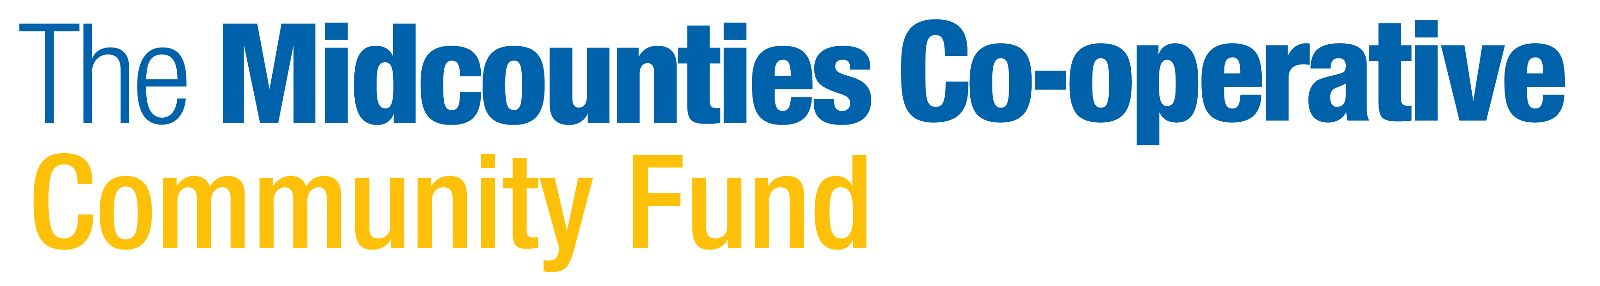 mid coop community fund logo